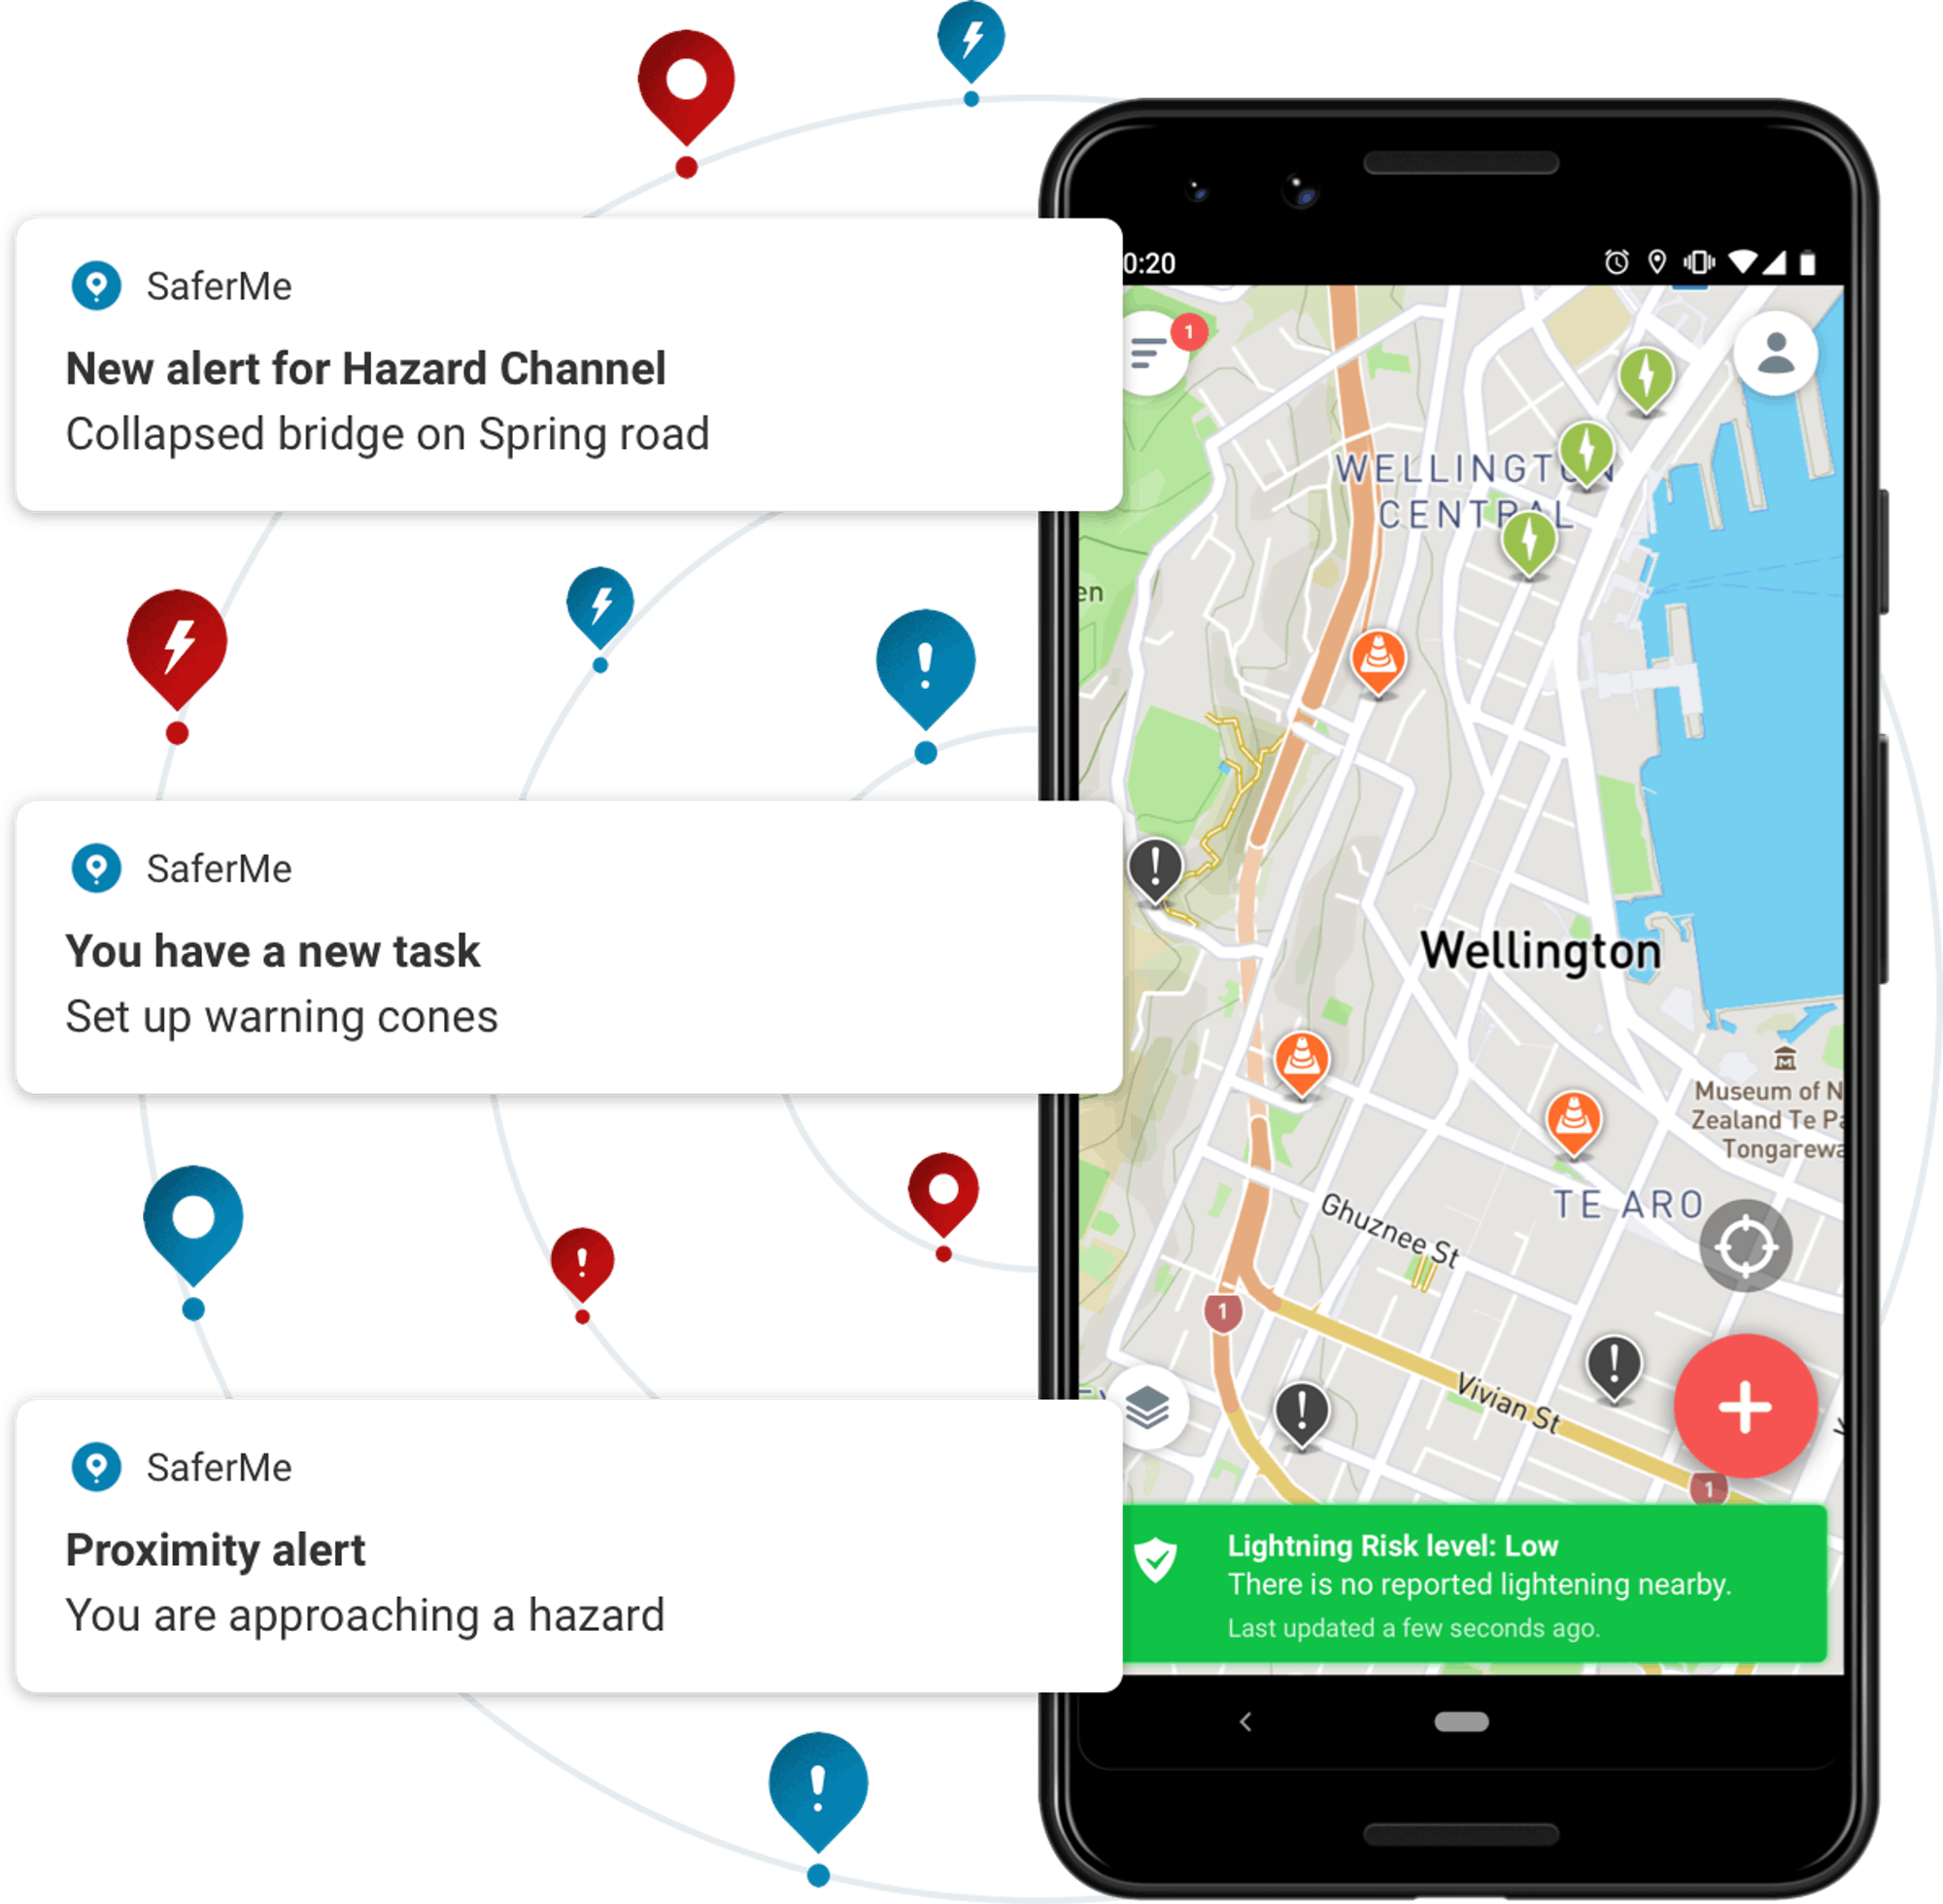 SaferMe app with alerts